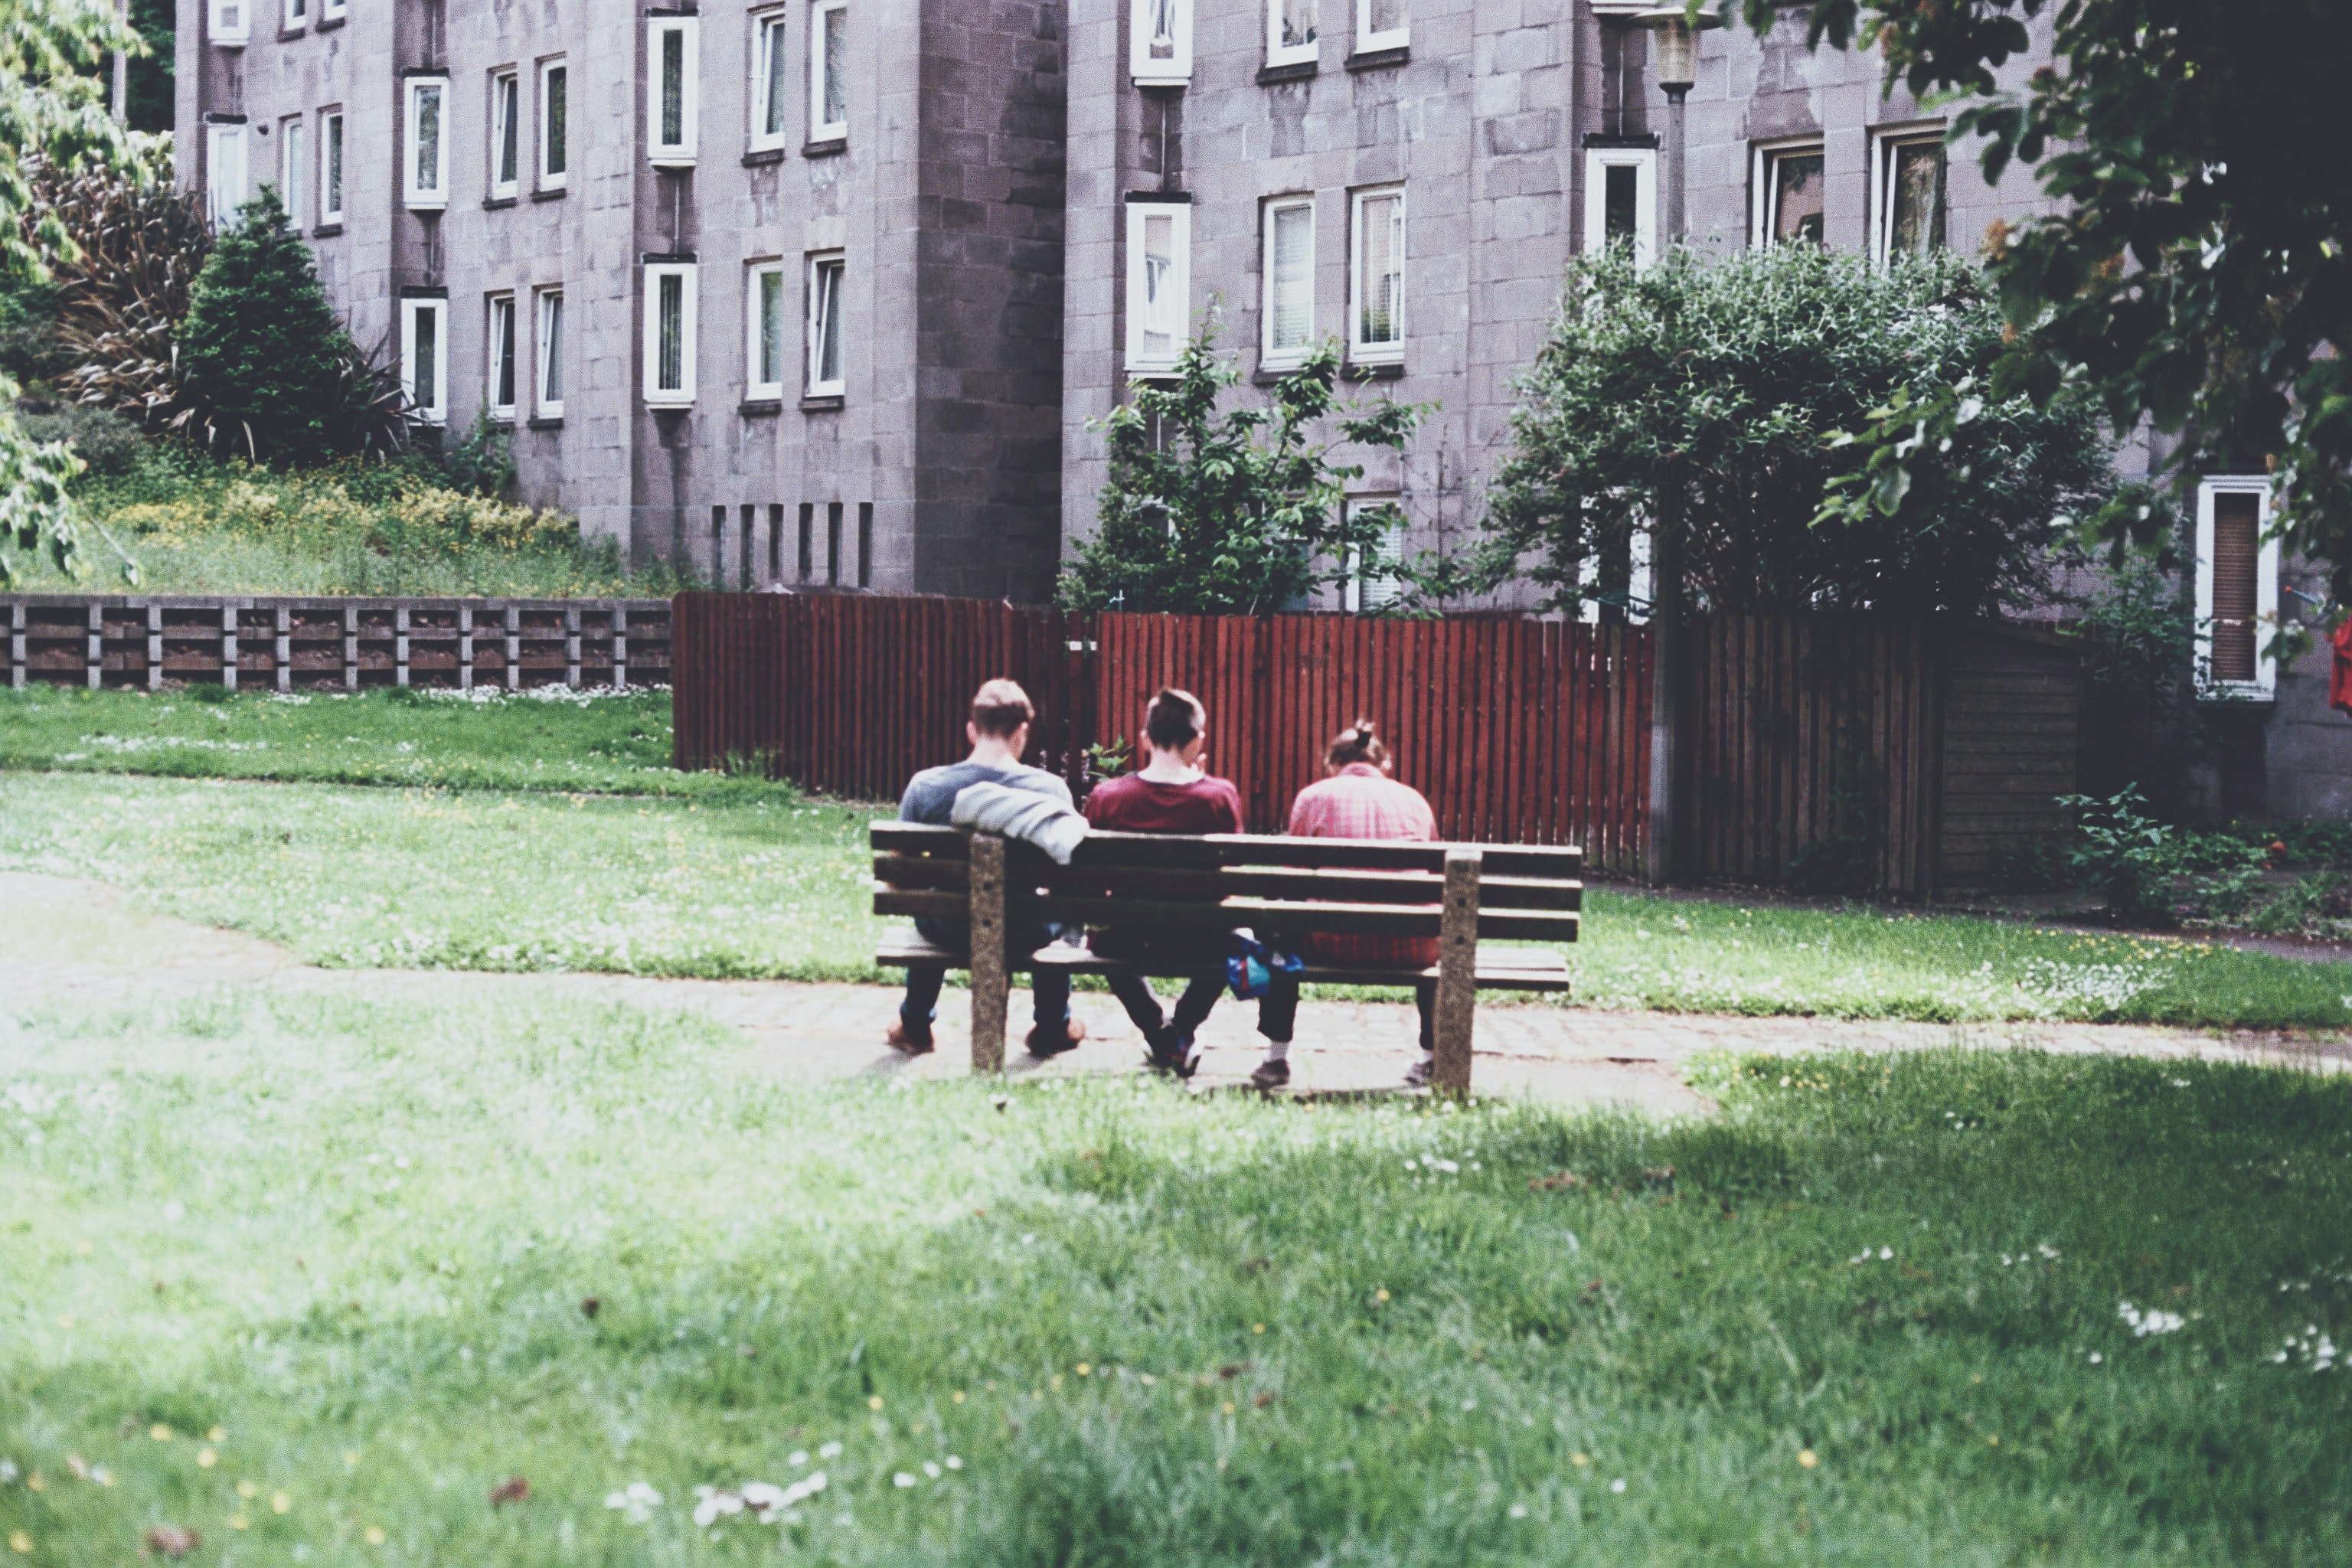 three person sitting on park bench during daytime